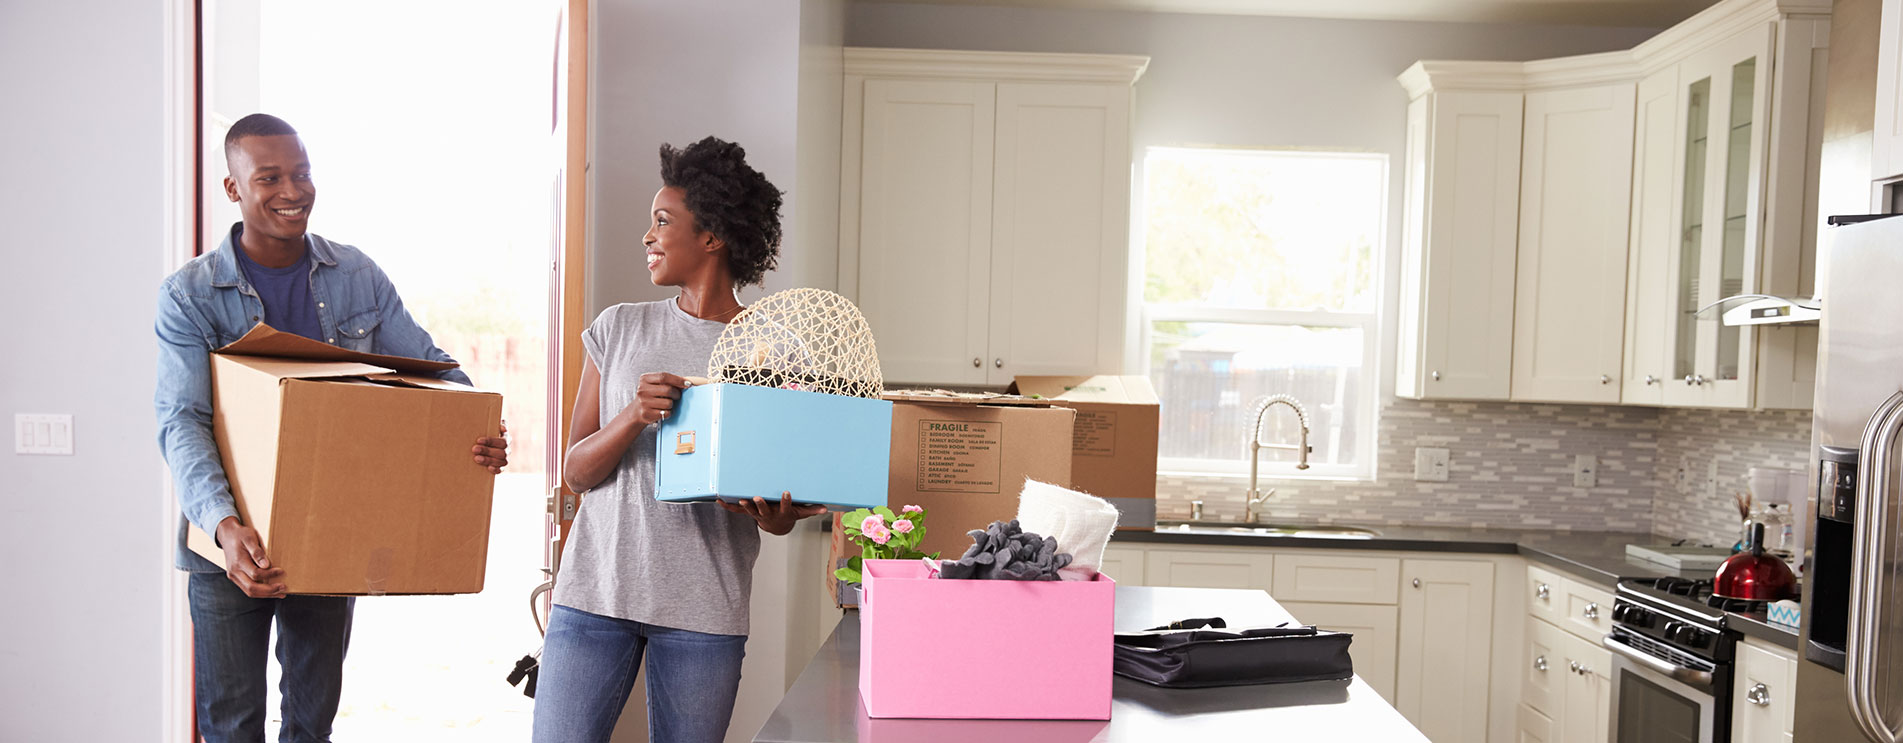 couple-moving-in_1903x743